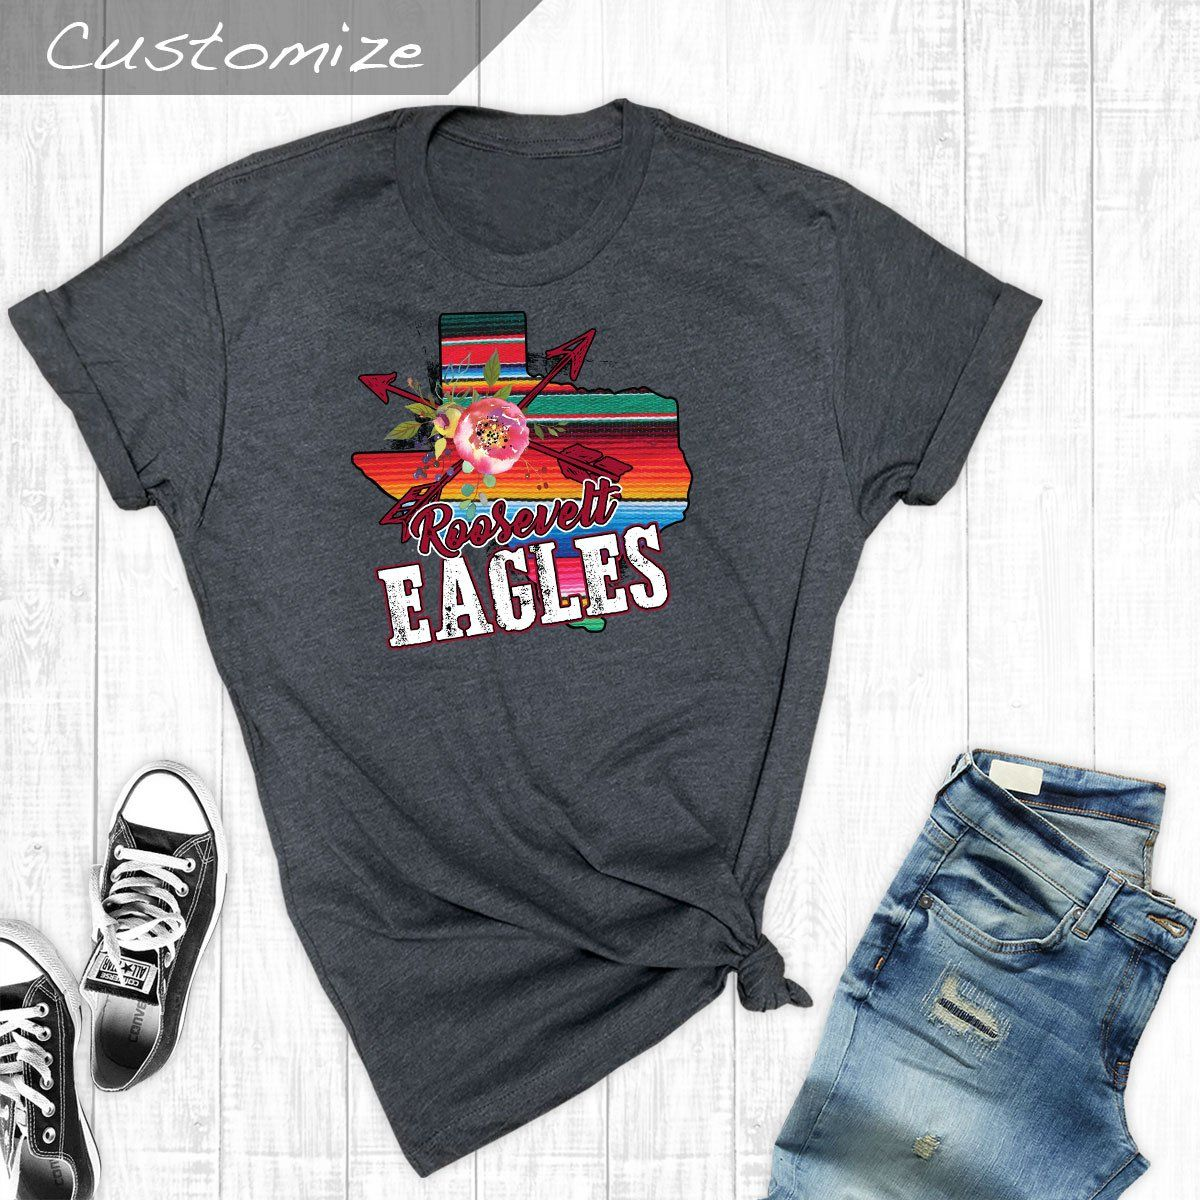 T-Shirts - Serape State Roosevelt Eagles